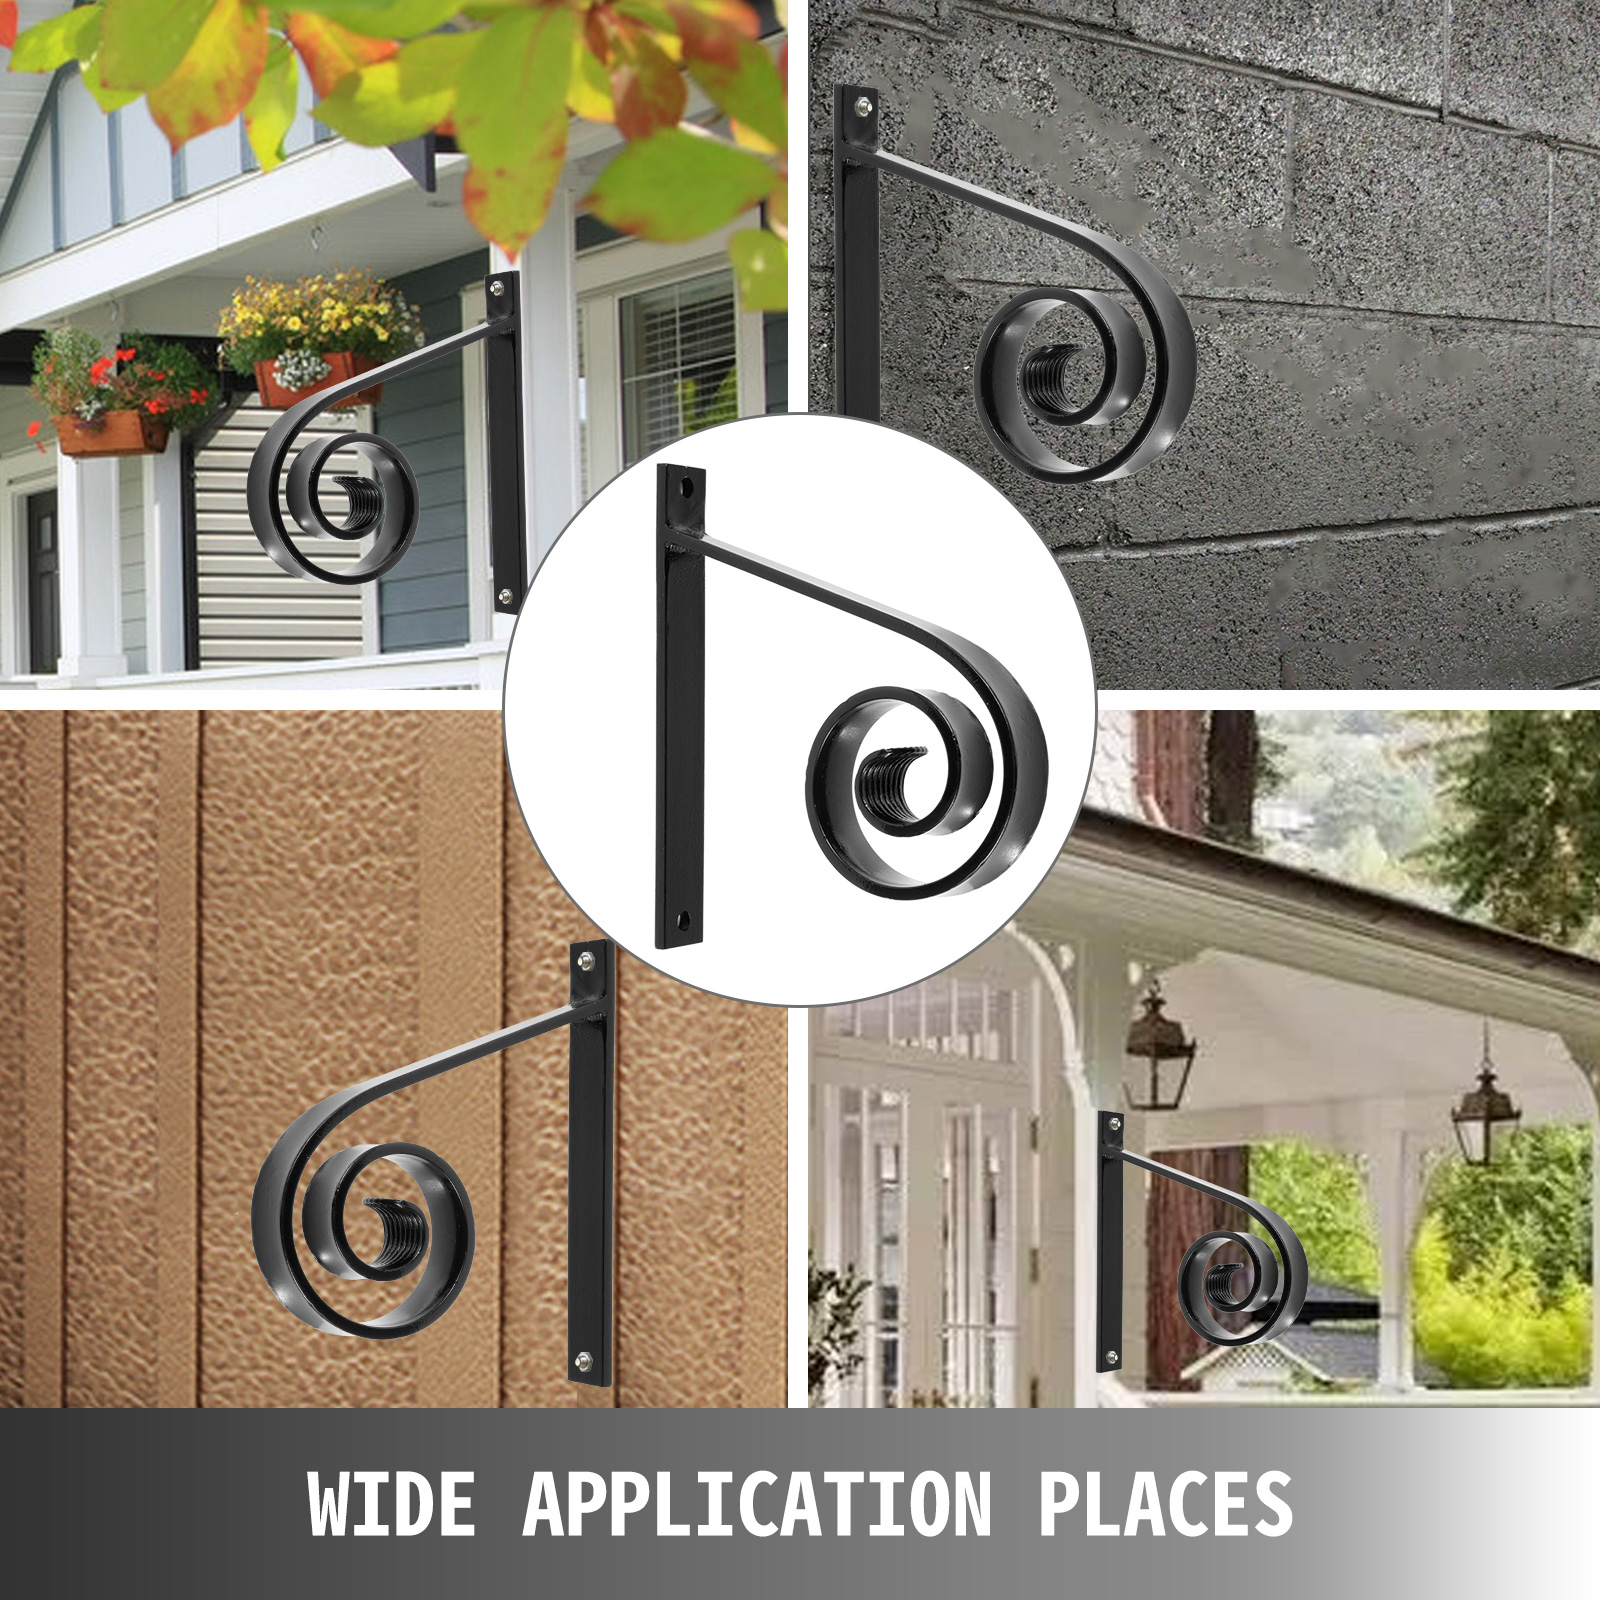 Handrails-for-Outdoor-Step-Wrought-Iron-Handrail-20-034-Length-Porch-Deck-Railing thumbnail 127